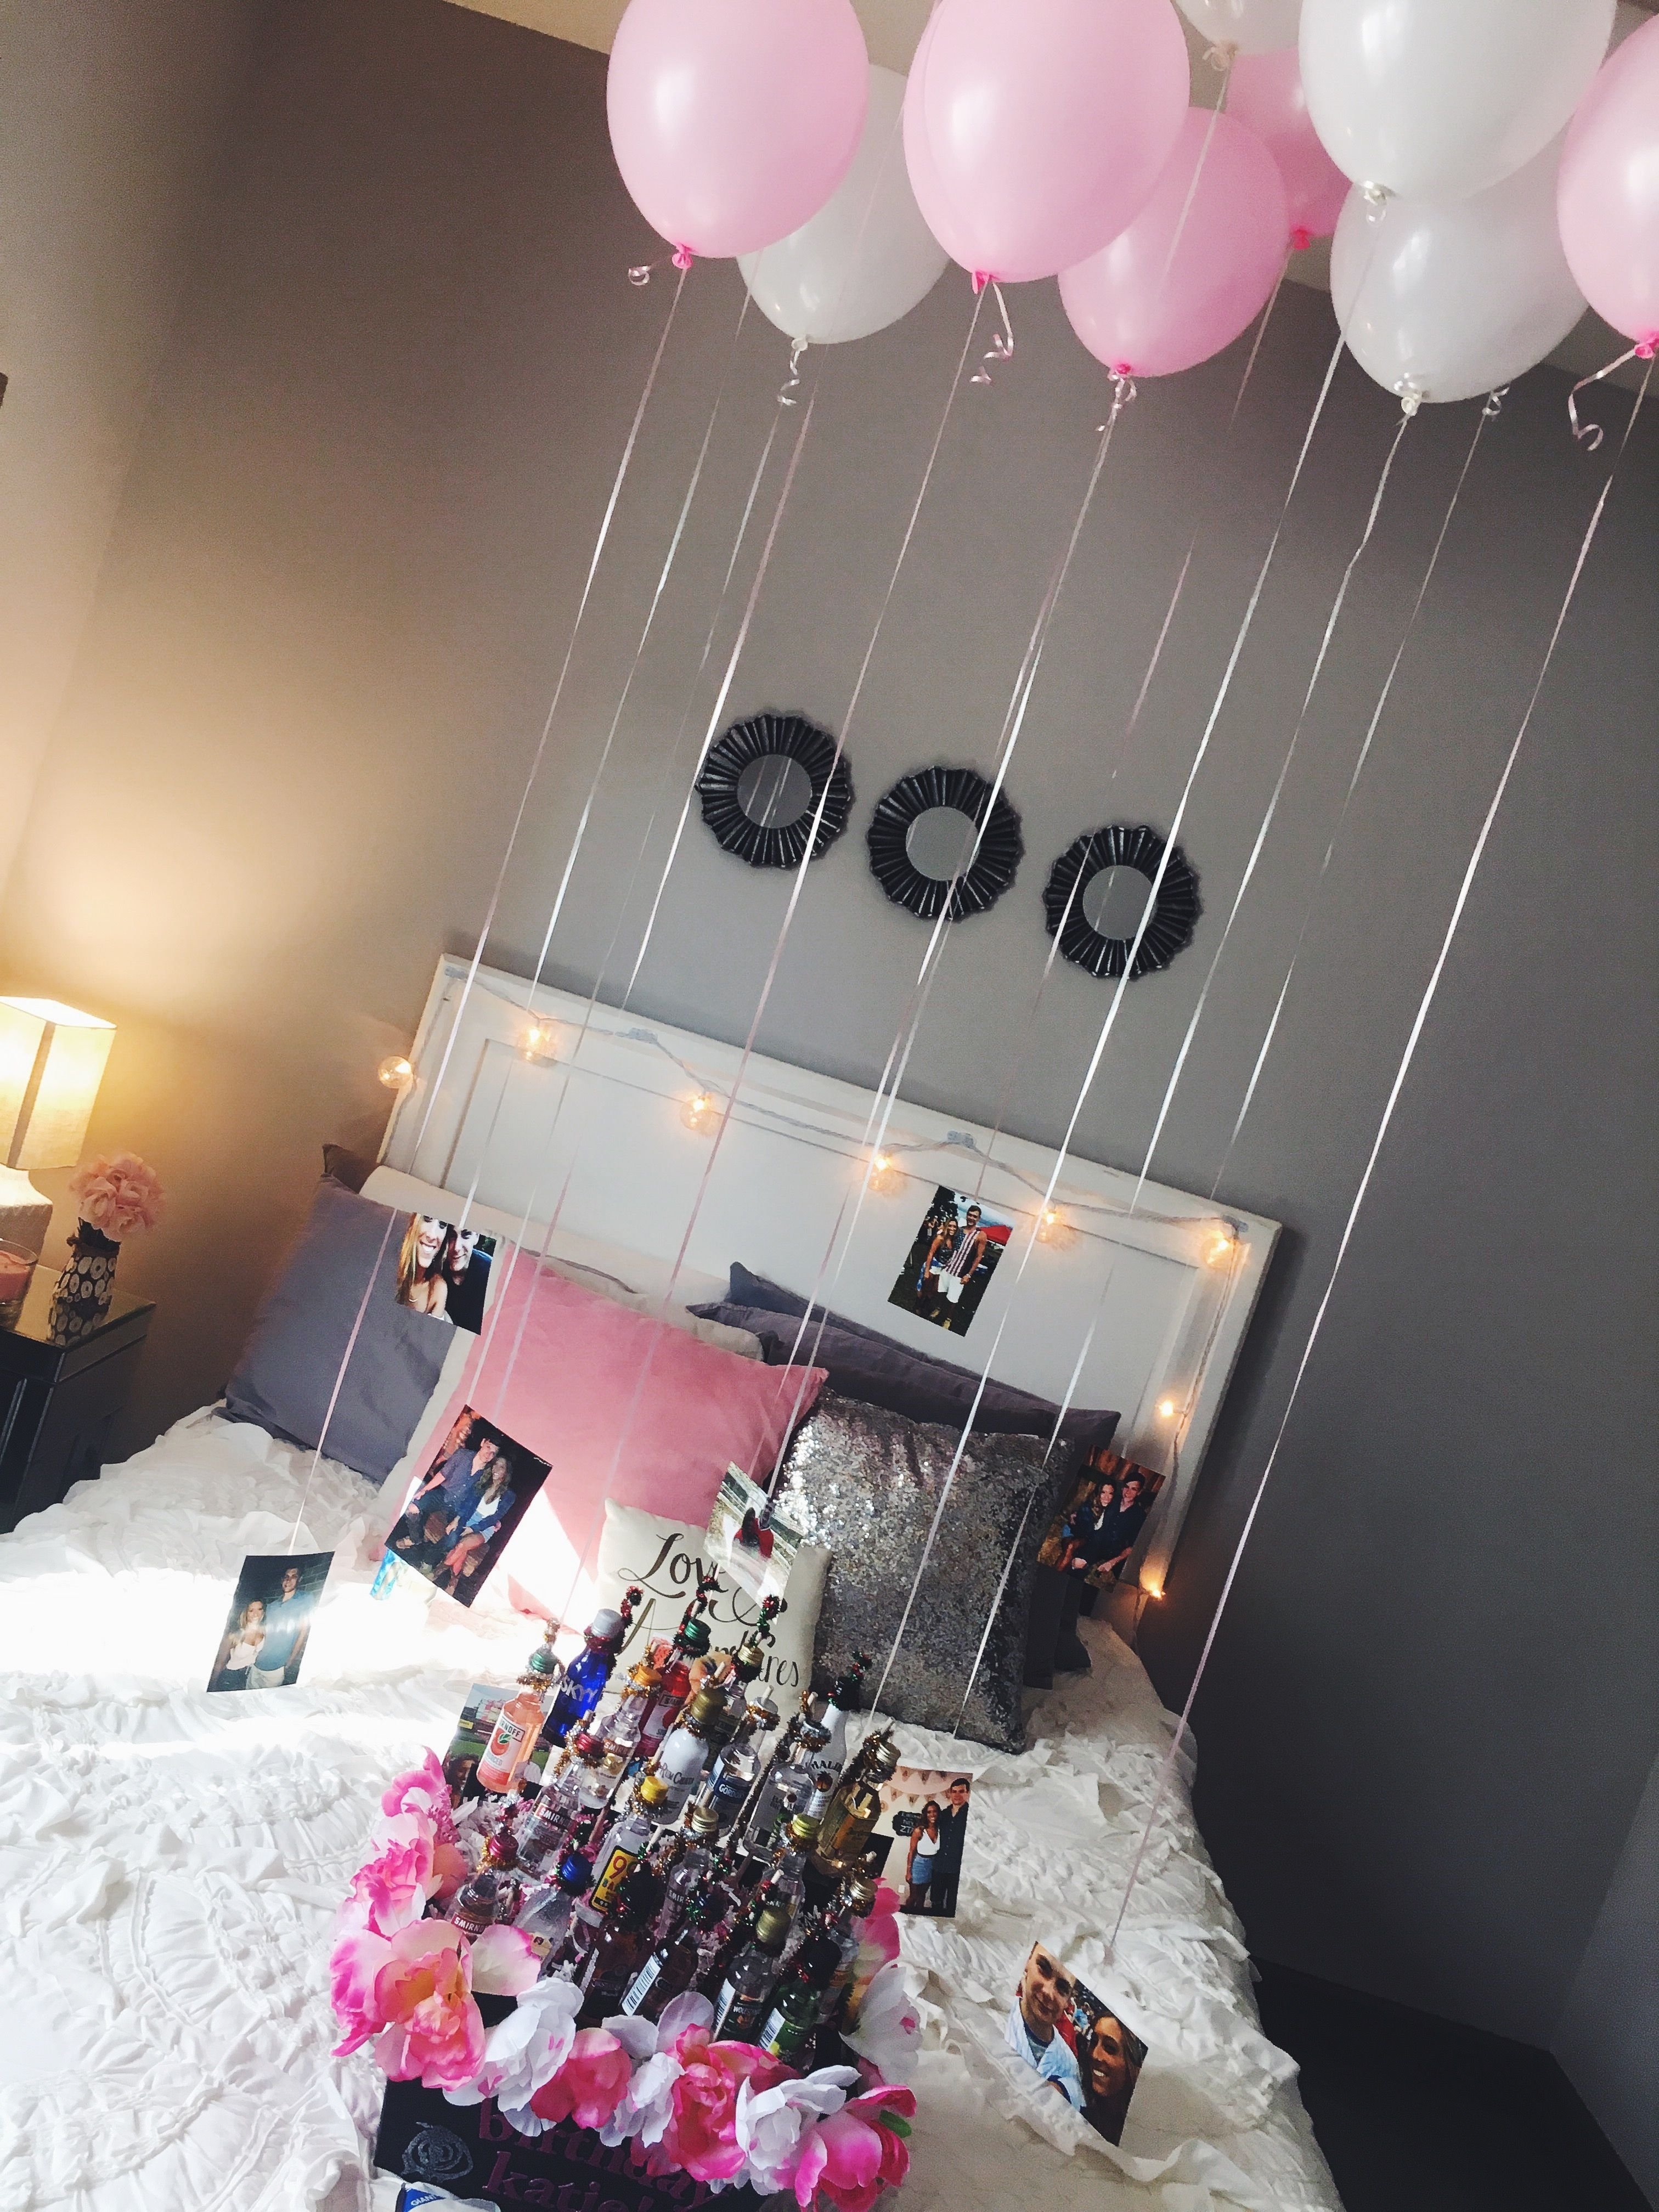 10 Cute Birthday Gift Idea For Girlfriend easy and cute decorations for a friend or girlfriends 21st birthday 7